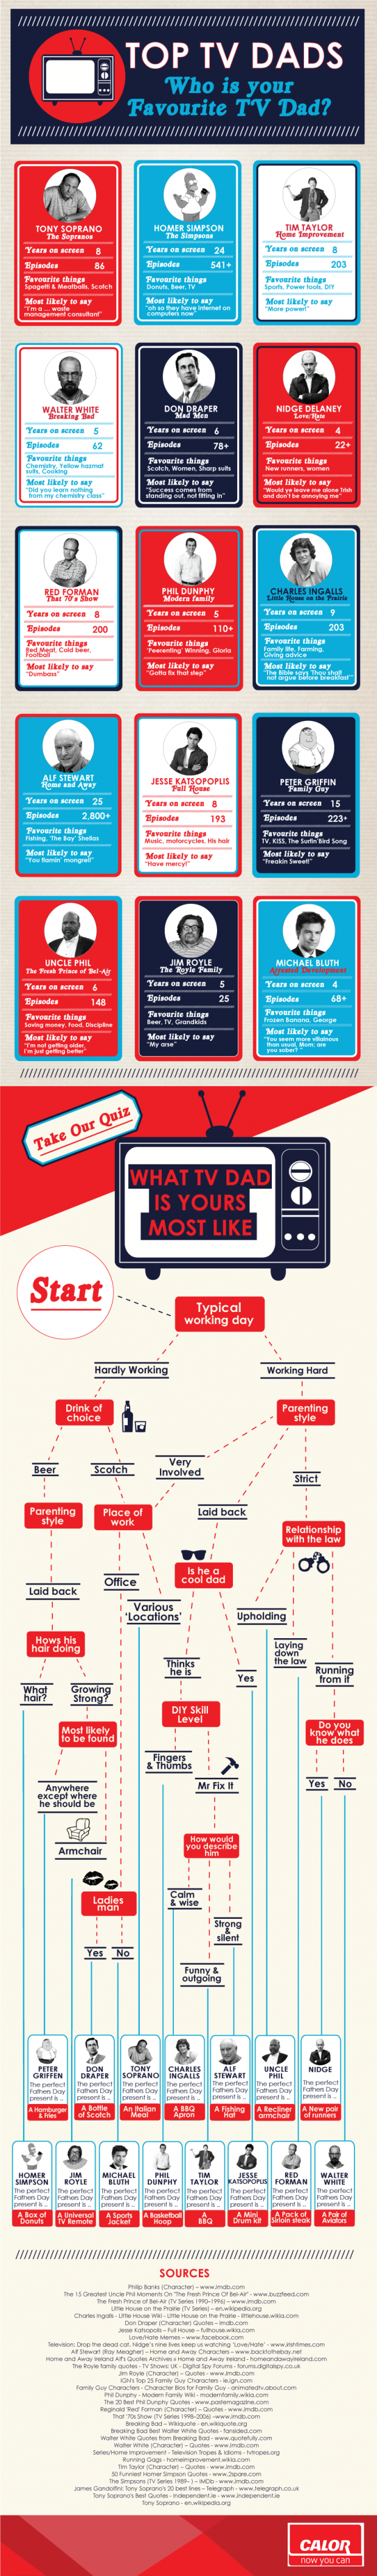 Calor-TV-Dads-Infographic